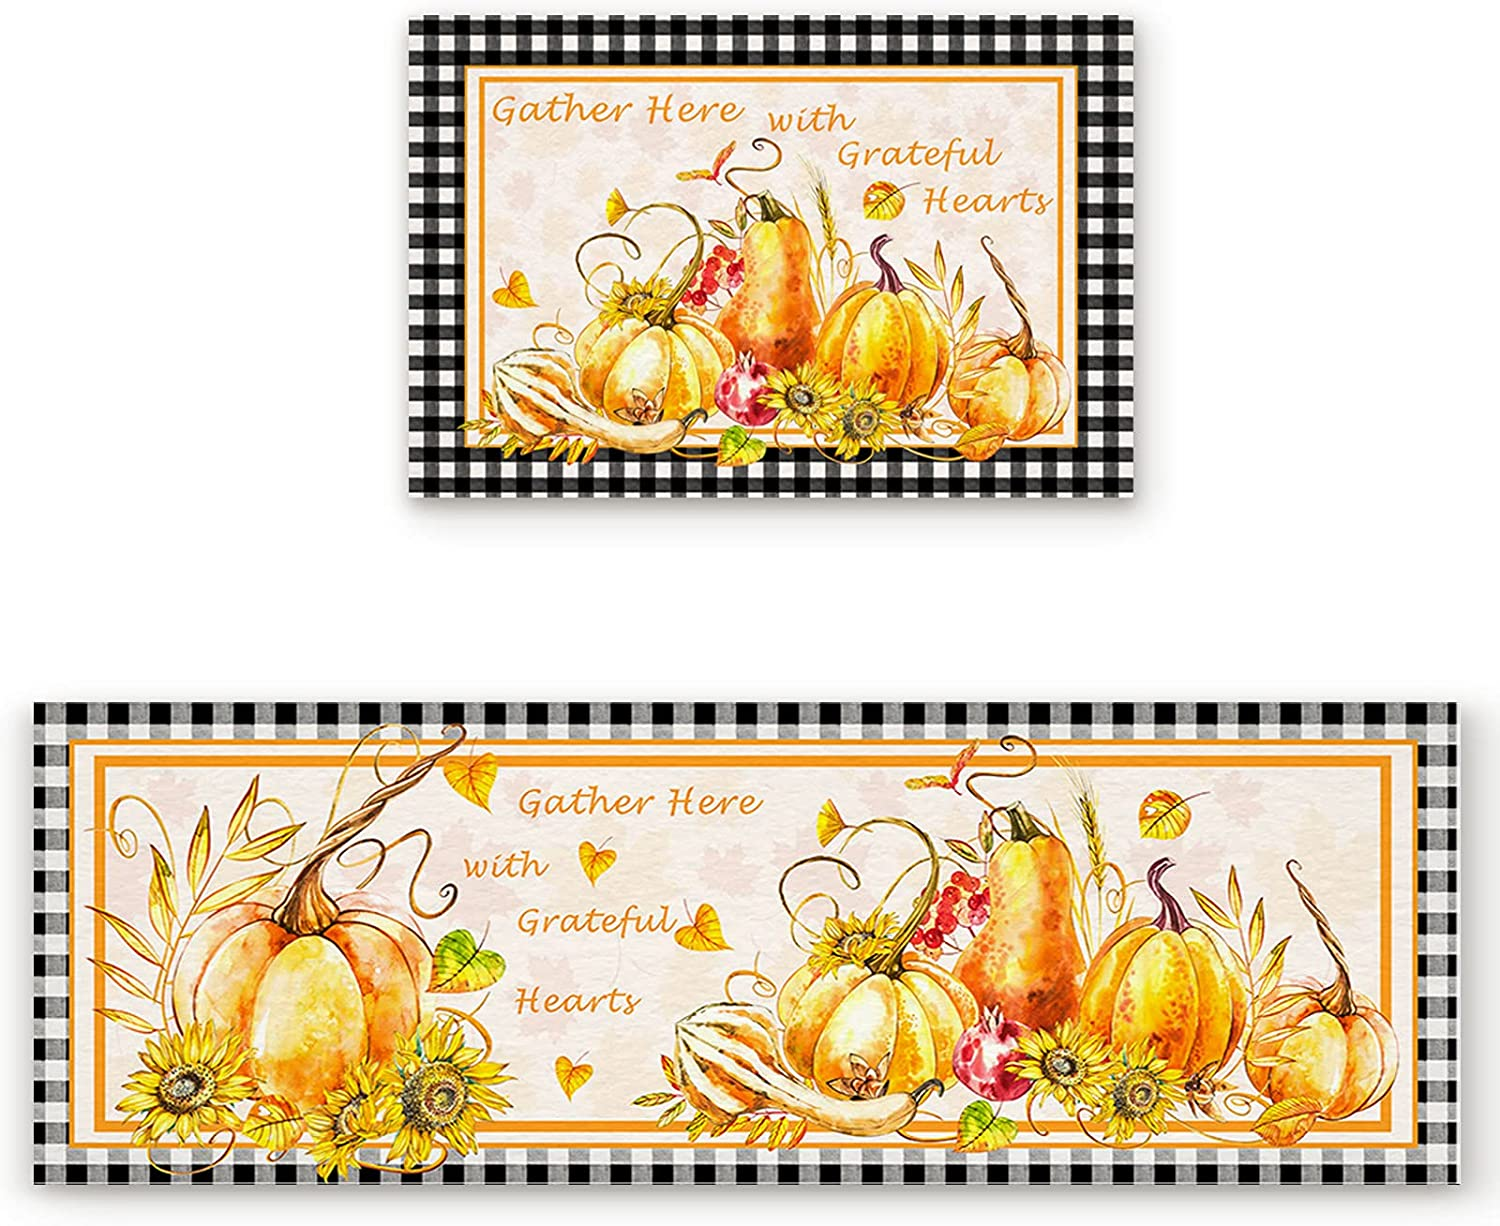 ZL Home Kitchen Rugs and Thanksgiving Mats Inventory cleanup selling sale Sunflower on Super beauty product restock quality top Pumpkin